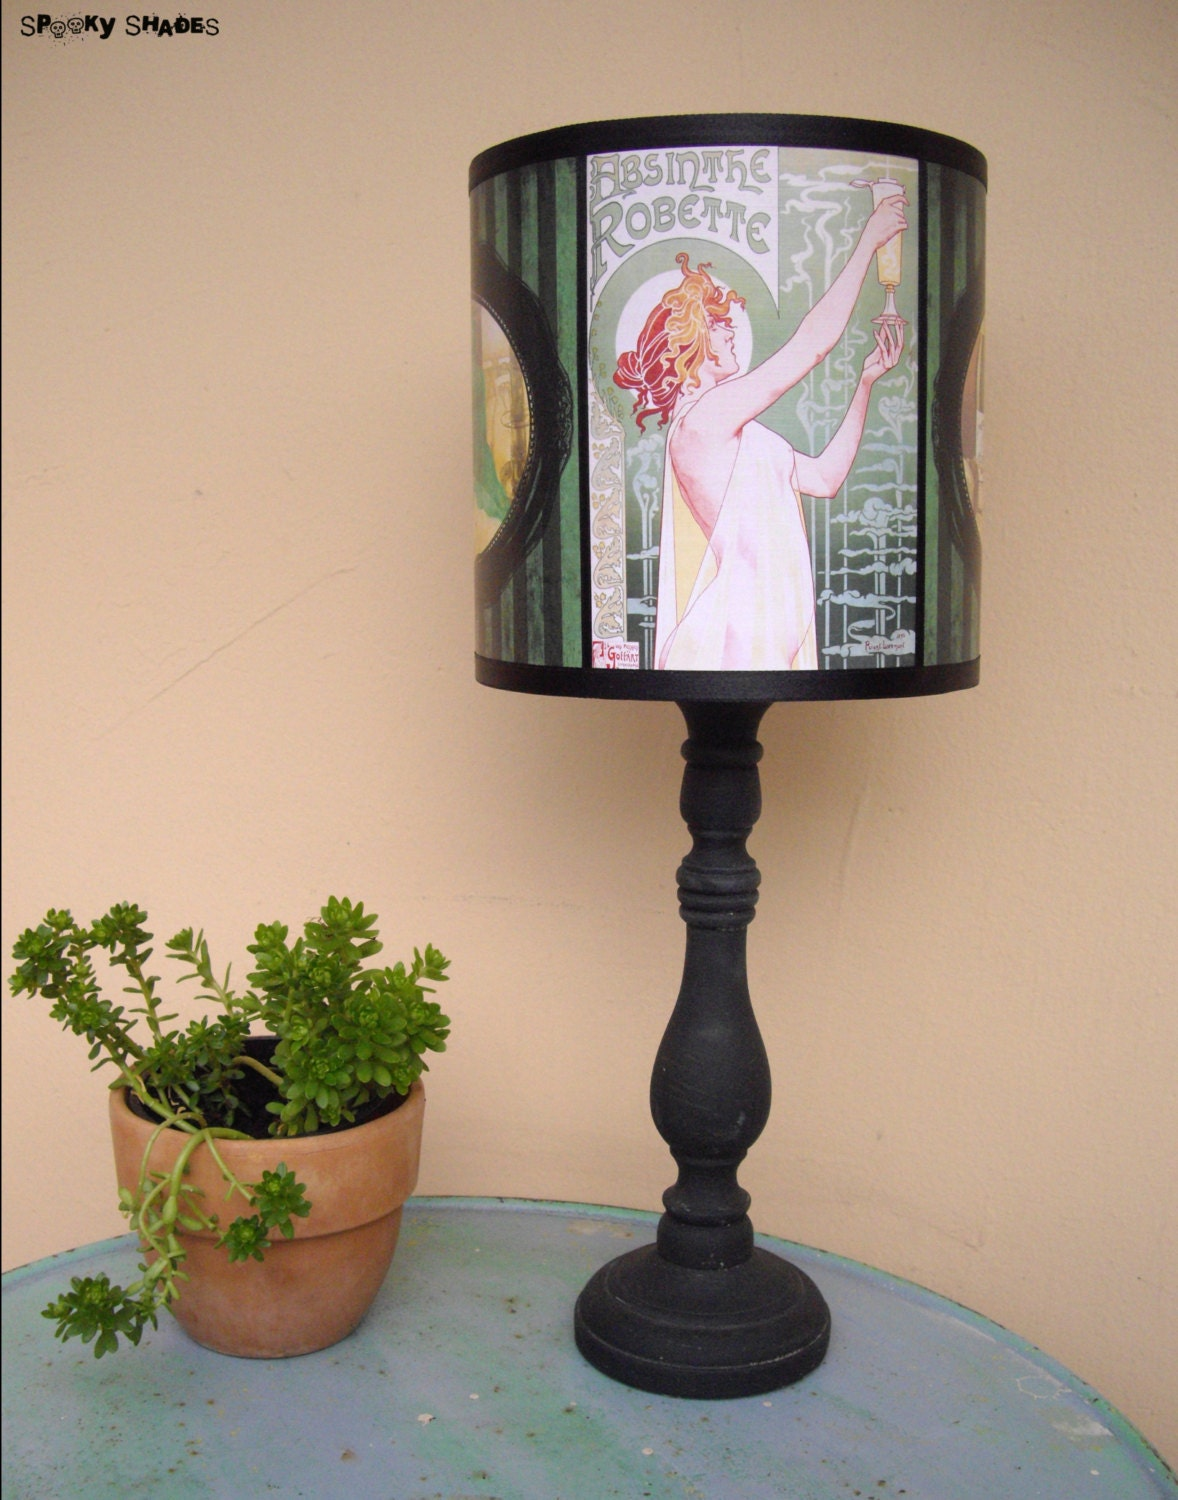 absinthe lamp shade lampshade bohemian decor by spookyshades. Black Bedroom Furniture Sets. Home Design Ideas